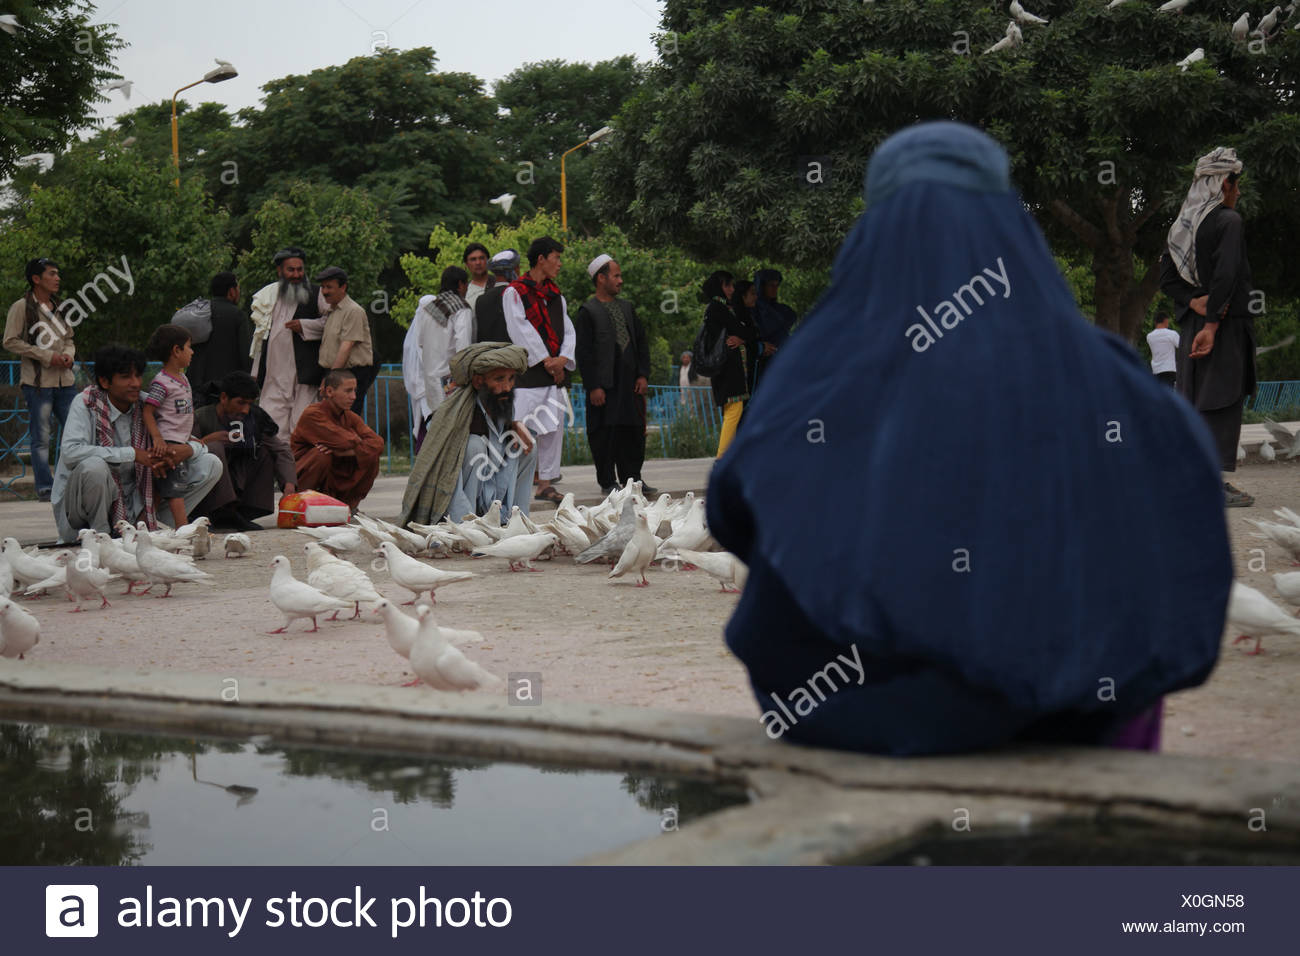 People in the park of the Blue Mosque in Mazar-e Sharif, Balkh, Afghanistan, Asia - Stock Image